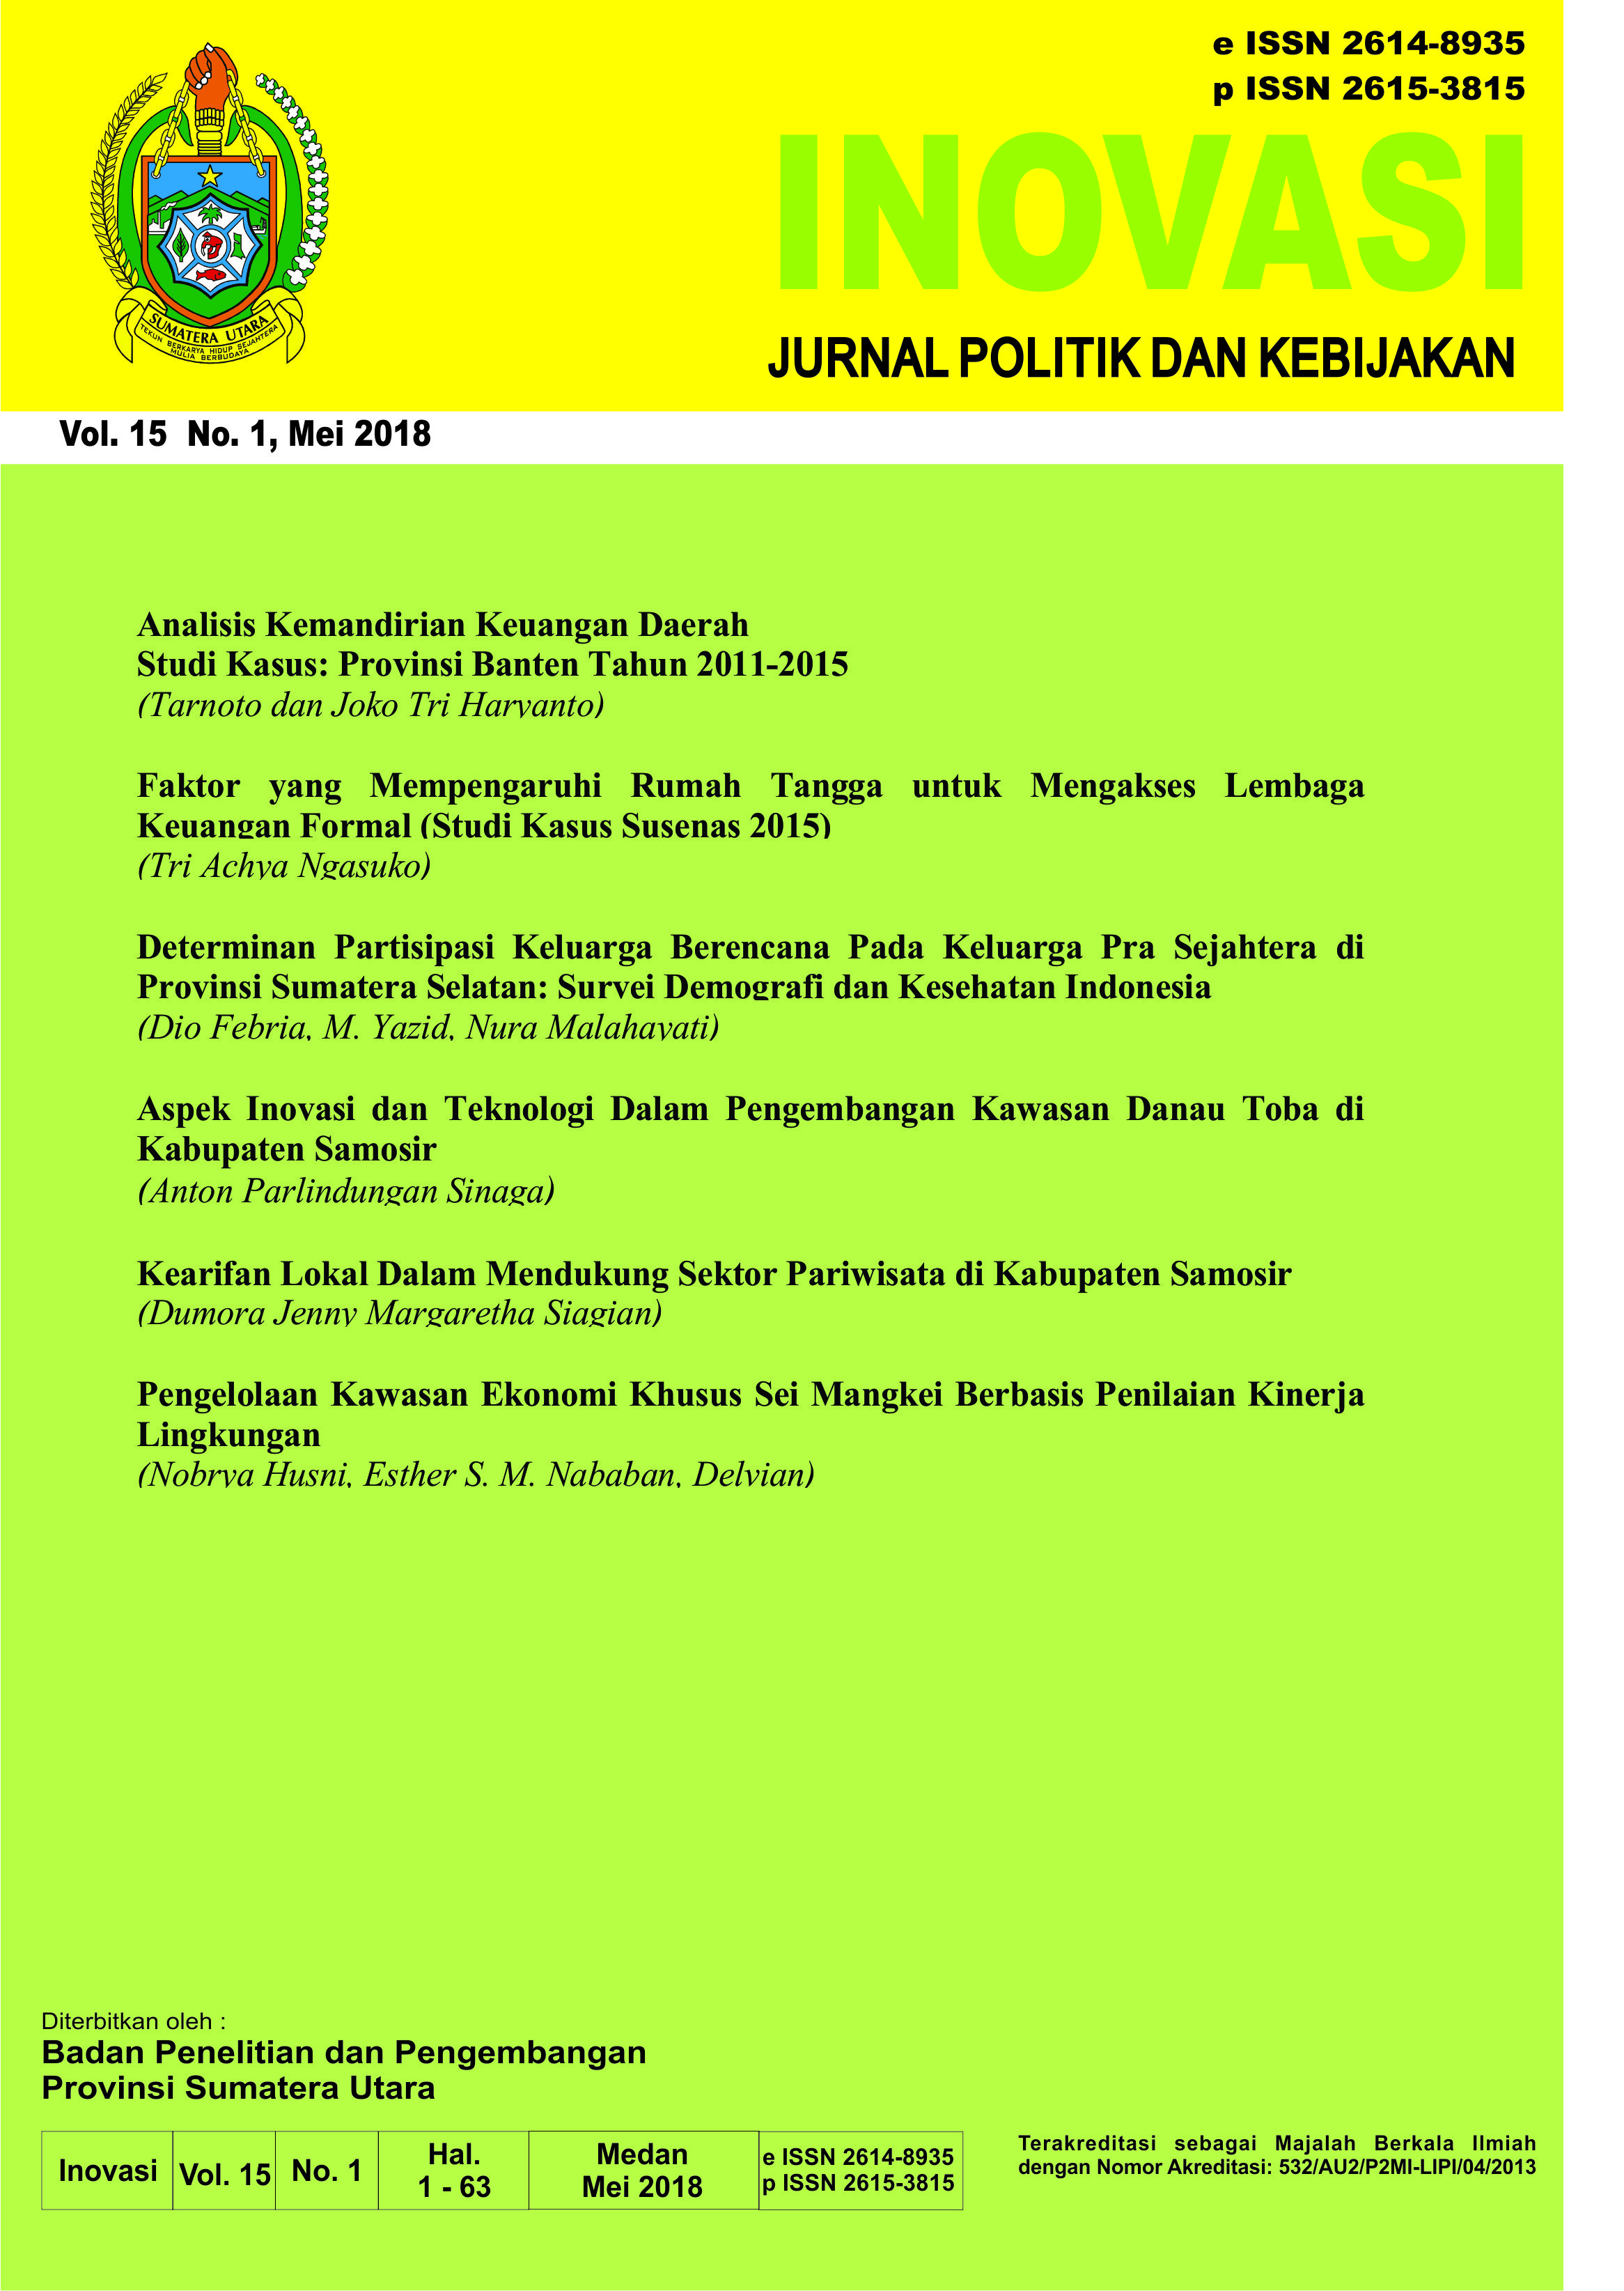 Jurnal INOVASI Vol. 15 No.1, Mei 2018